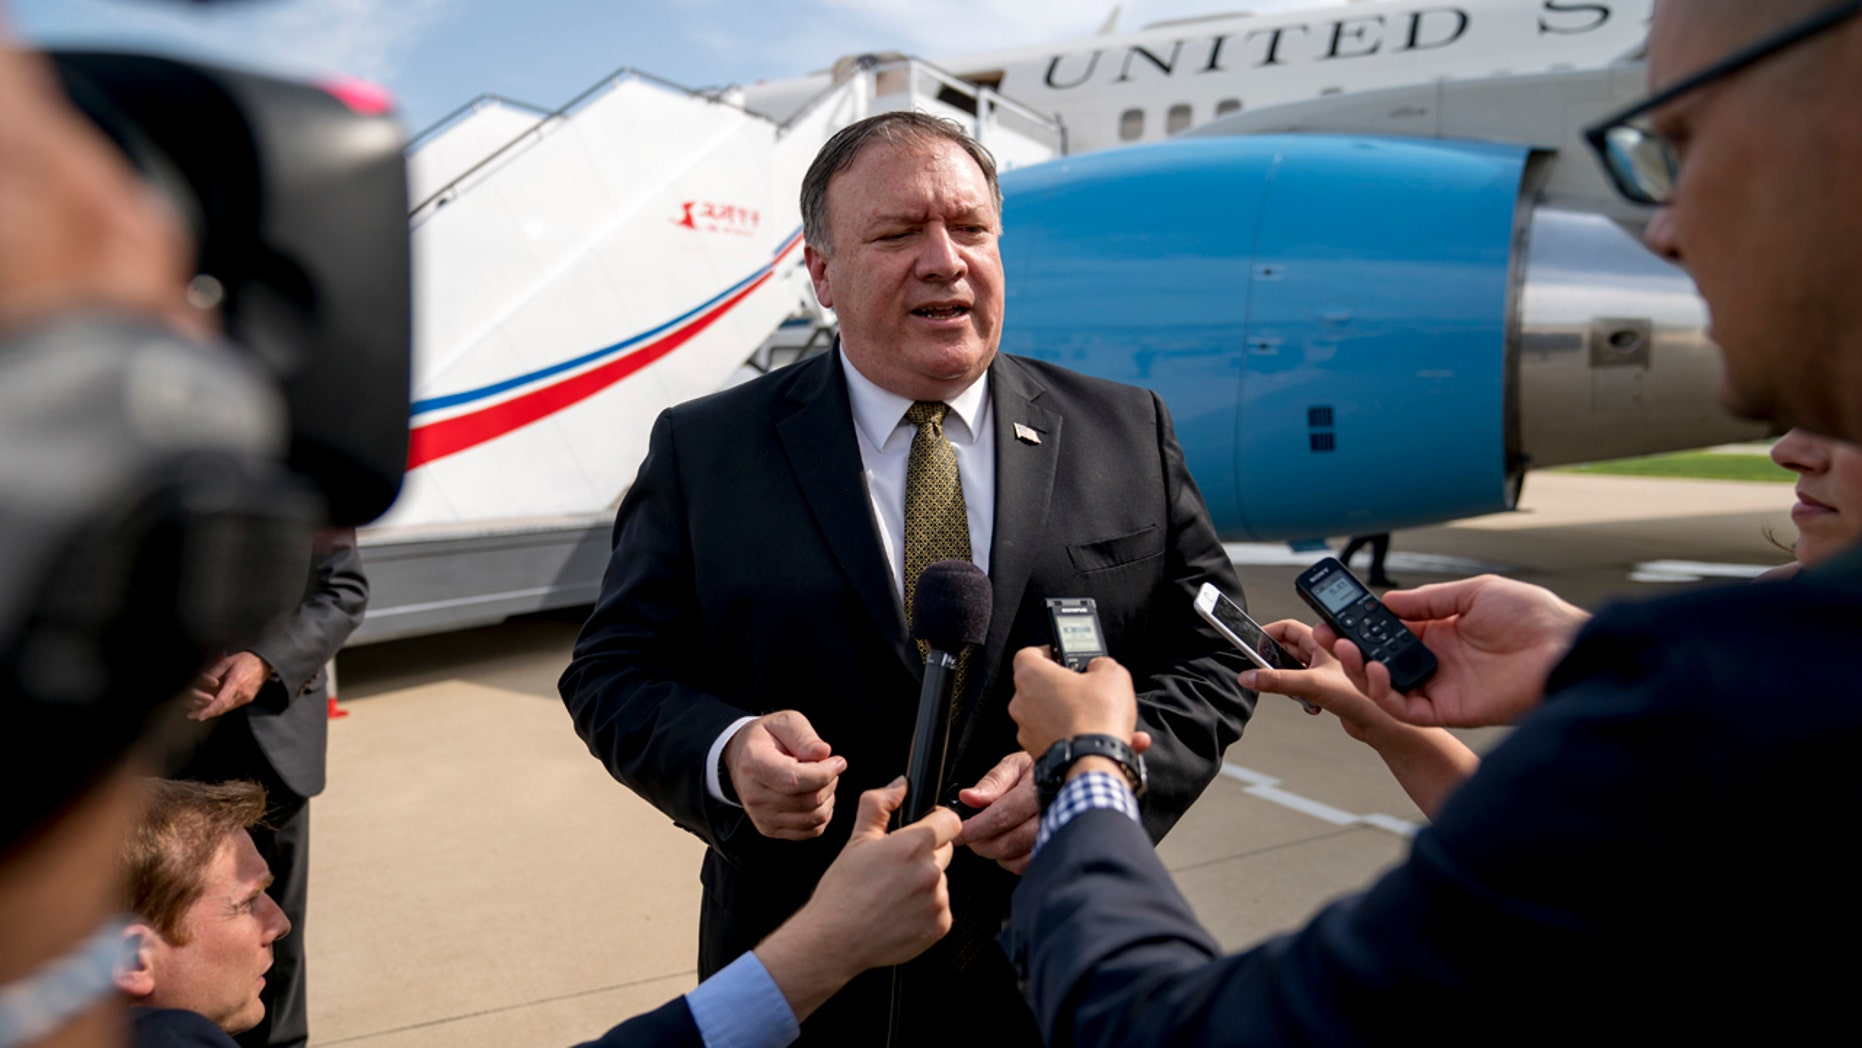 U.S. Secretary of State Mike Pompeo speaks to members of the media following two days of meetings with Kim Yong Chol, a North Korean senior ruling party official and former intelligence chief, before boarding his plane in Pyongyang, North Korea, Saturday, July 7, 2018, to Japan.